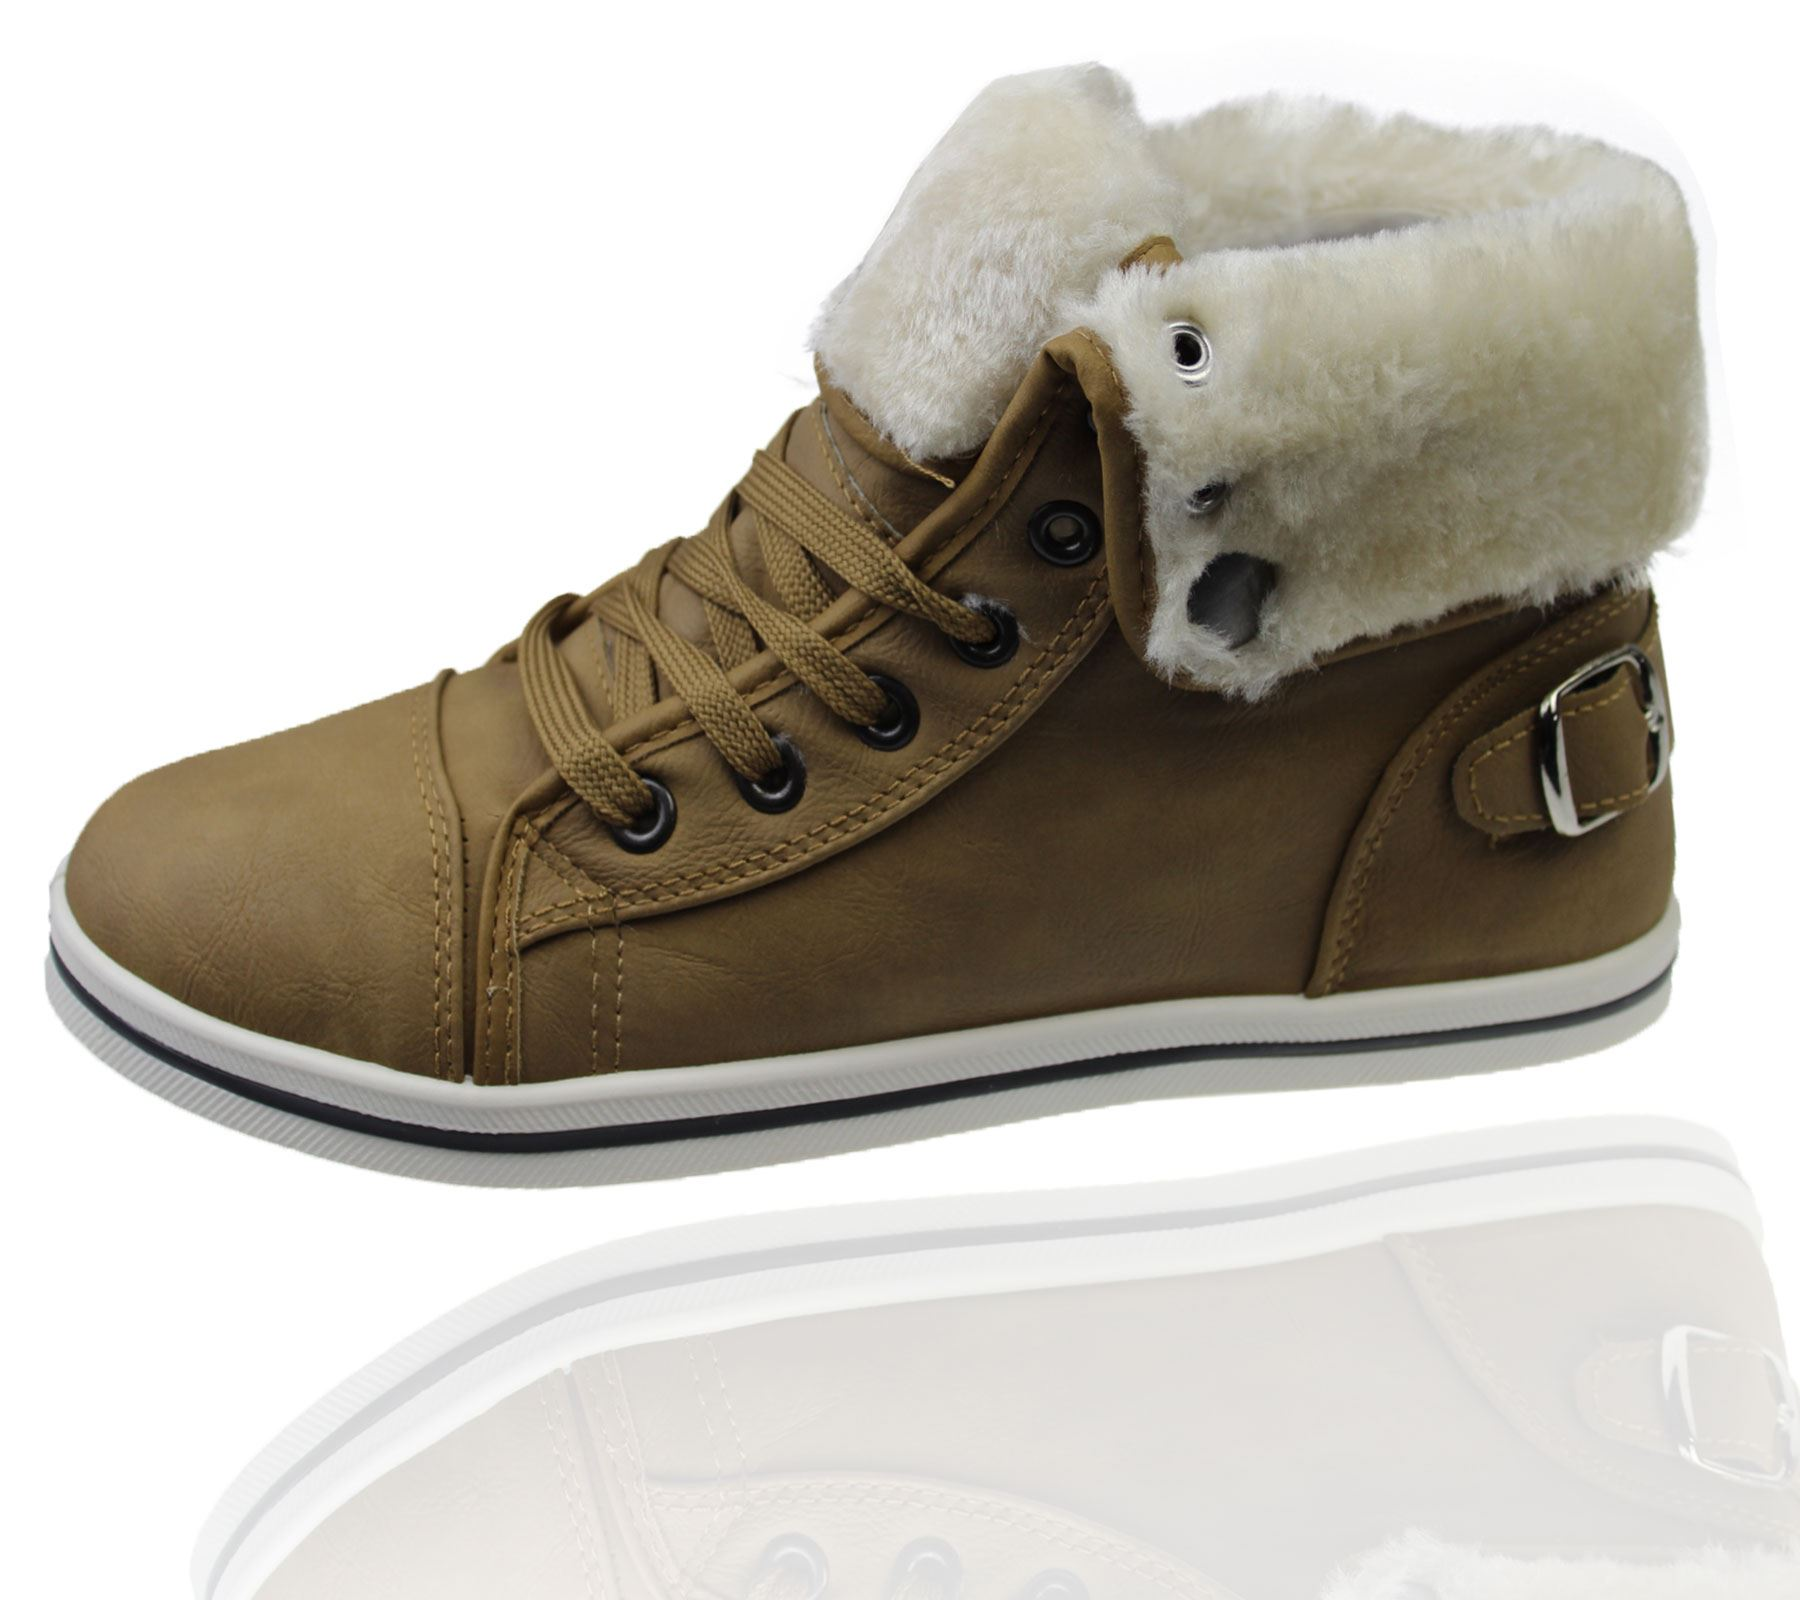 Womens Warm Lined Boots High Top Ankle Ladies Trainer ...